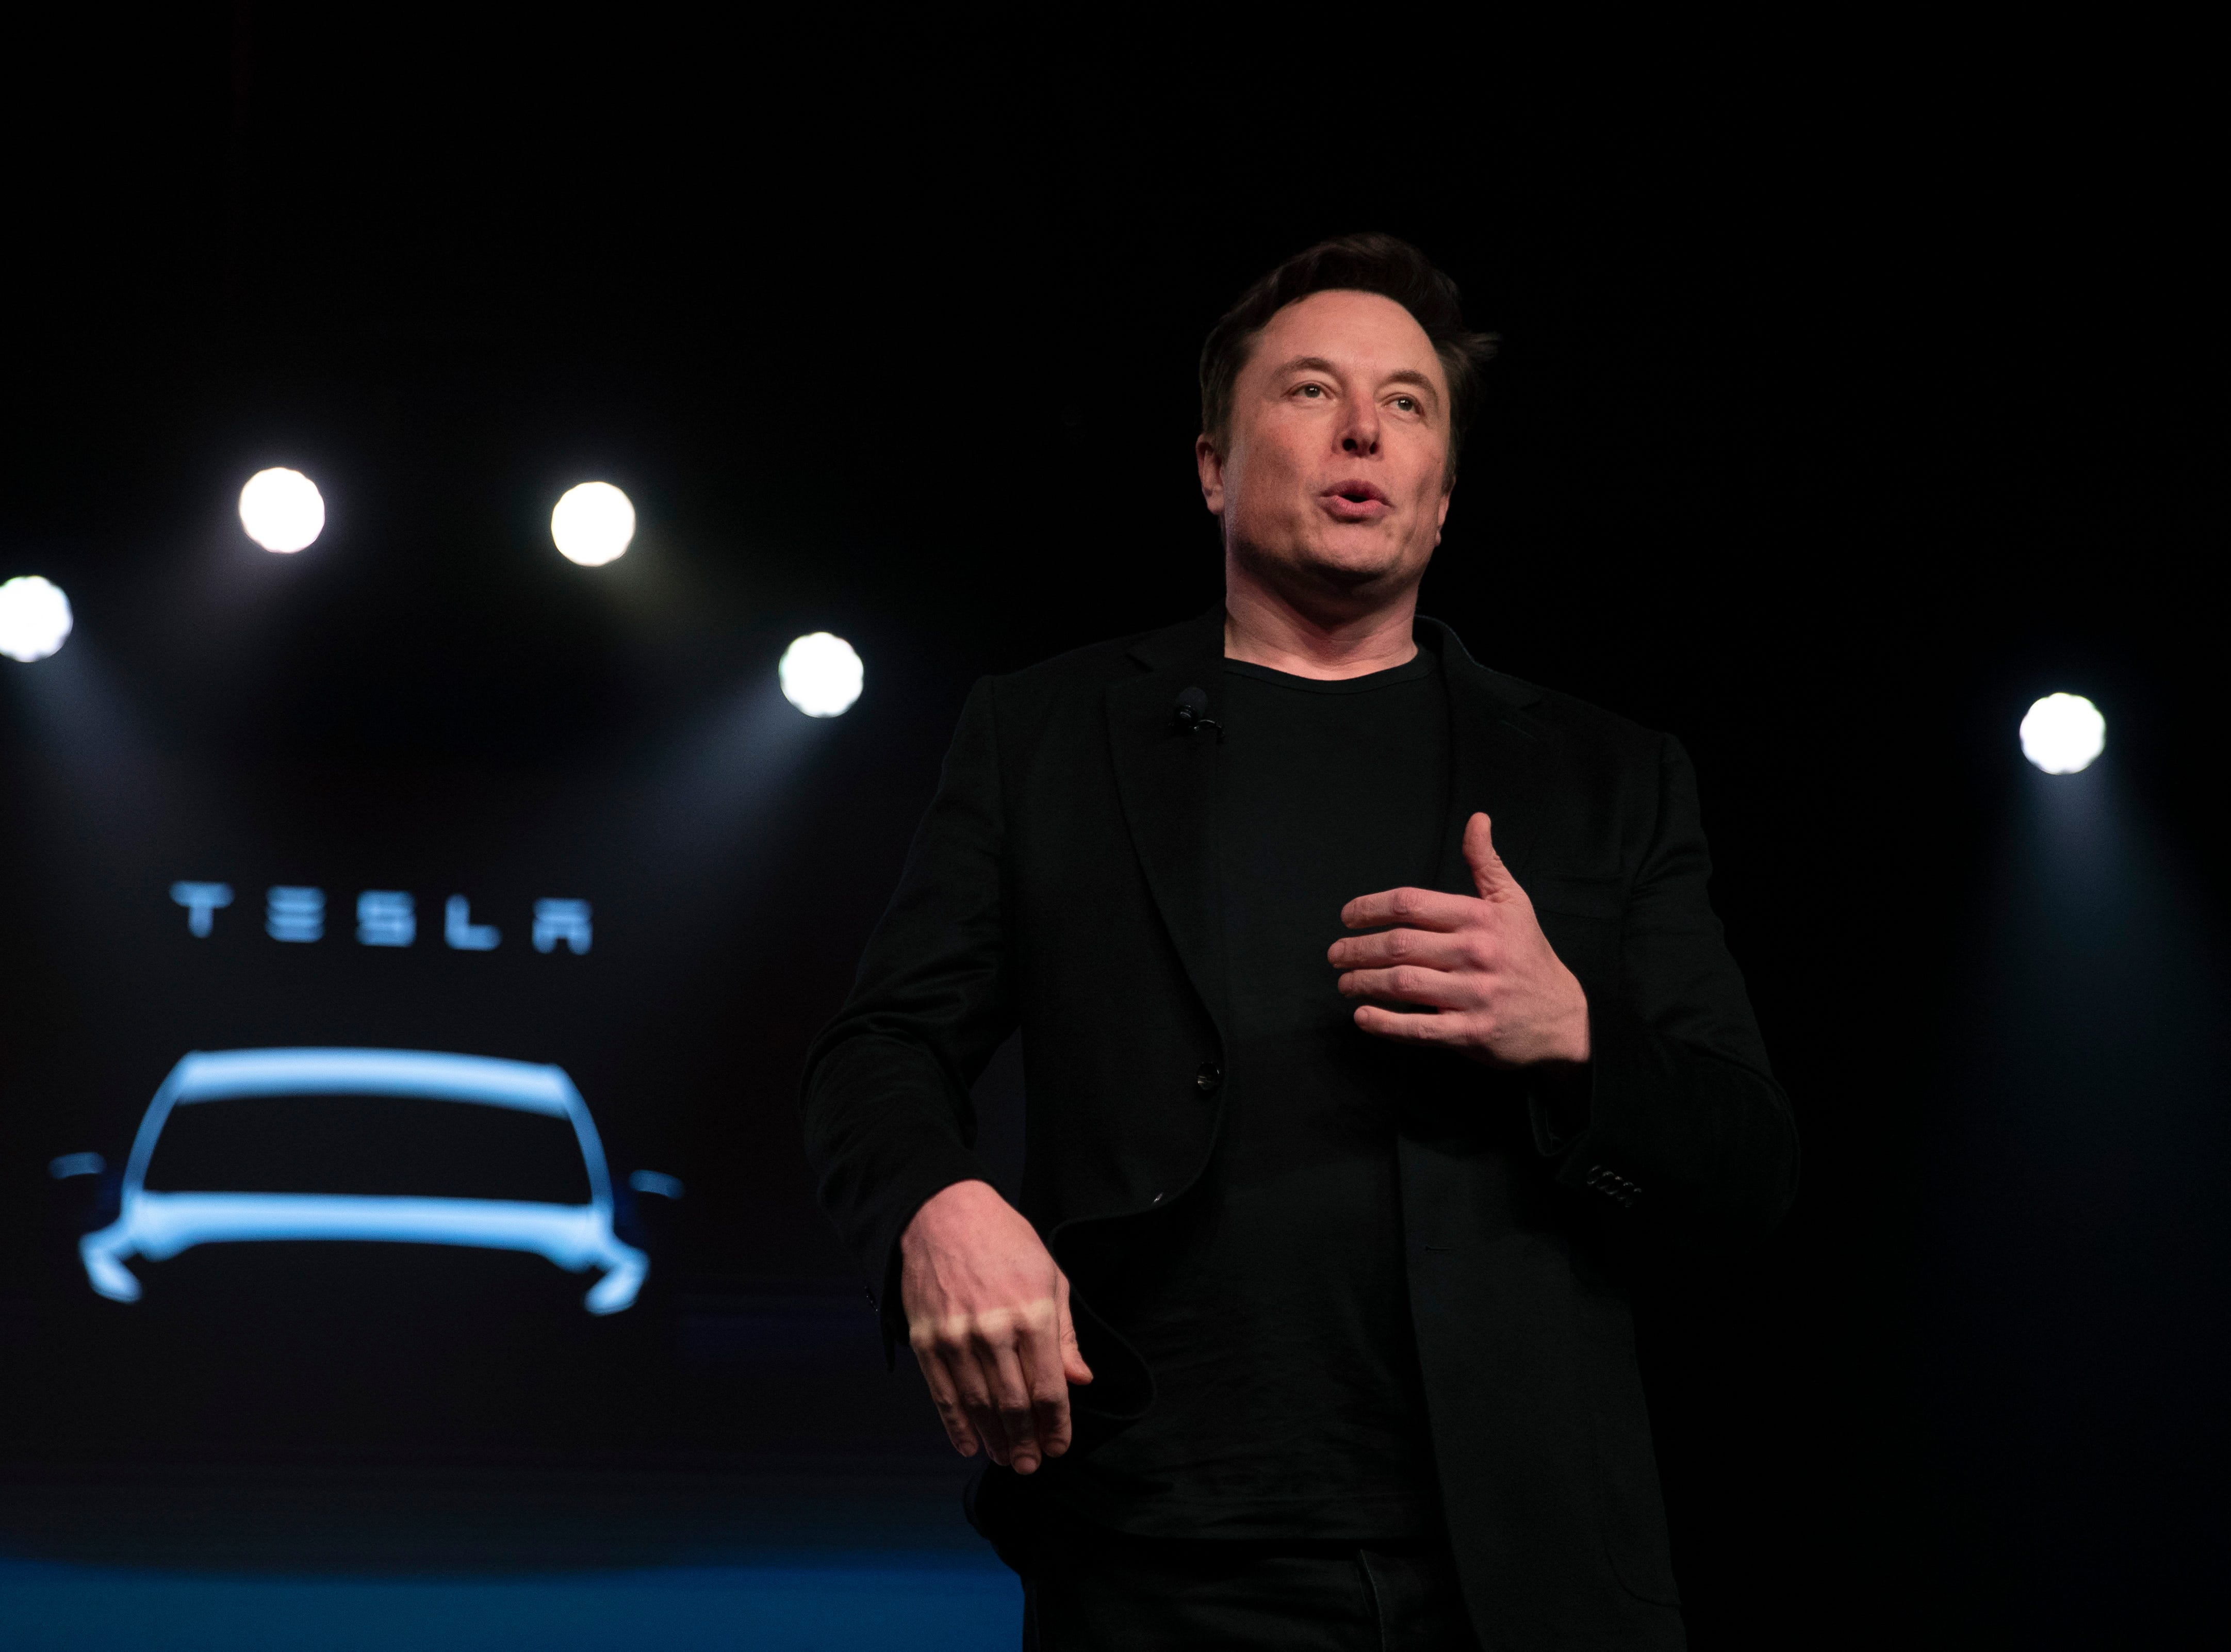 Tesla CEO Elon Musk speaks before unveiling the Model Y at the company's design studio Thursday, March 14, 2019, in Hawthorne, Calif. The Model Y may be Tesla's most important product yet as it attempts to expand into the mainstream and generate enough cash to repay massive debts that threaten to topple the Palo Alto, California, company. (AP Photo/Jae C. Hong)